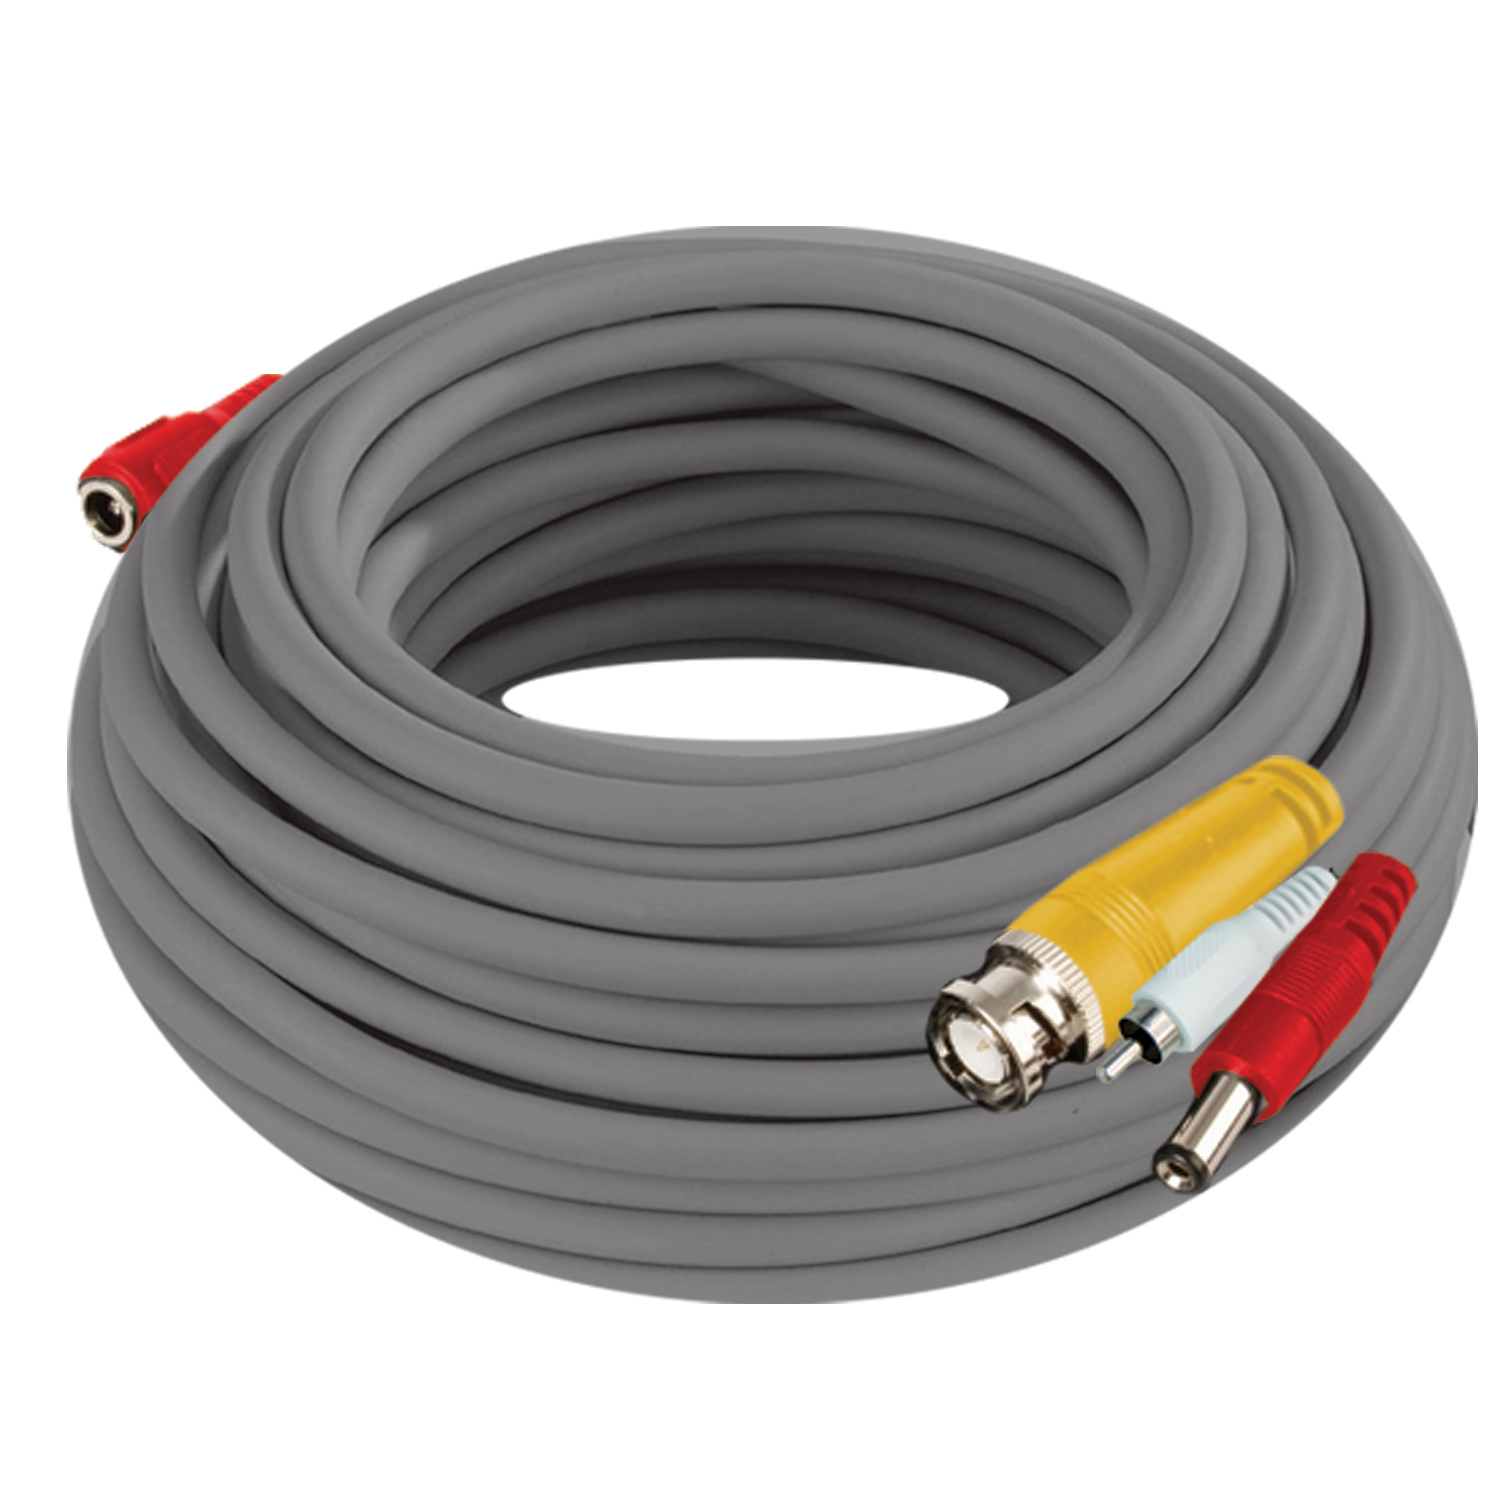 Night Owl Security Products 100' BNC Video/Power Camera Extension Cable with Adapter and Audio